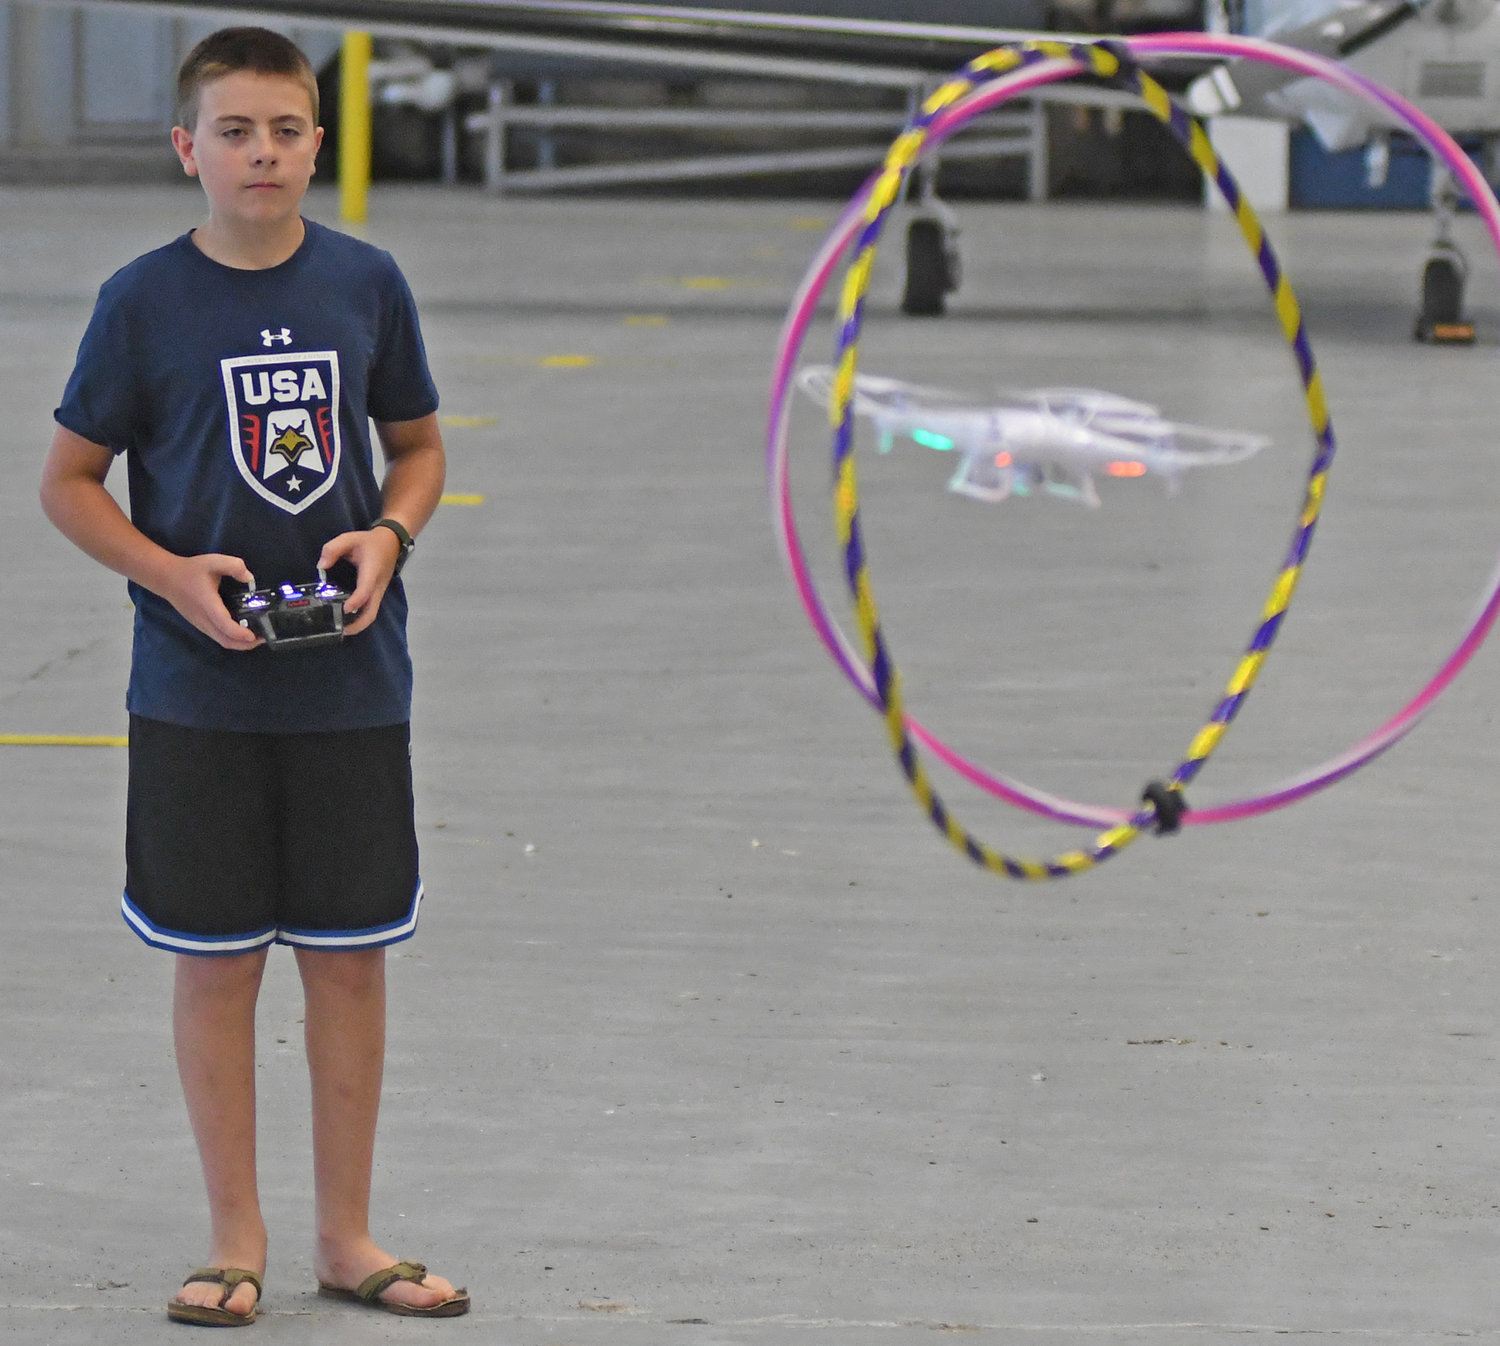 Alex Brzuszkiewicz from Oneida practices flying a drone at Building 100 before the obstacle course competition begins on Thursday.